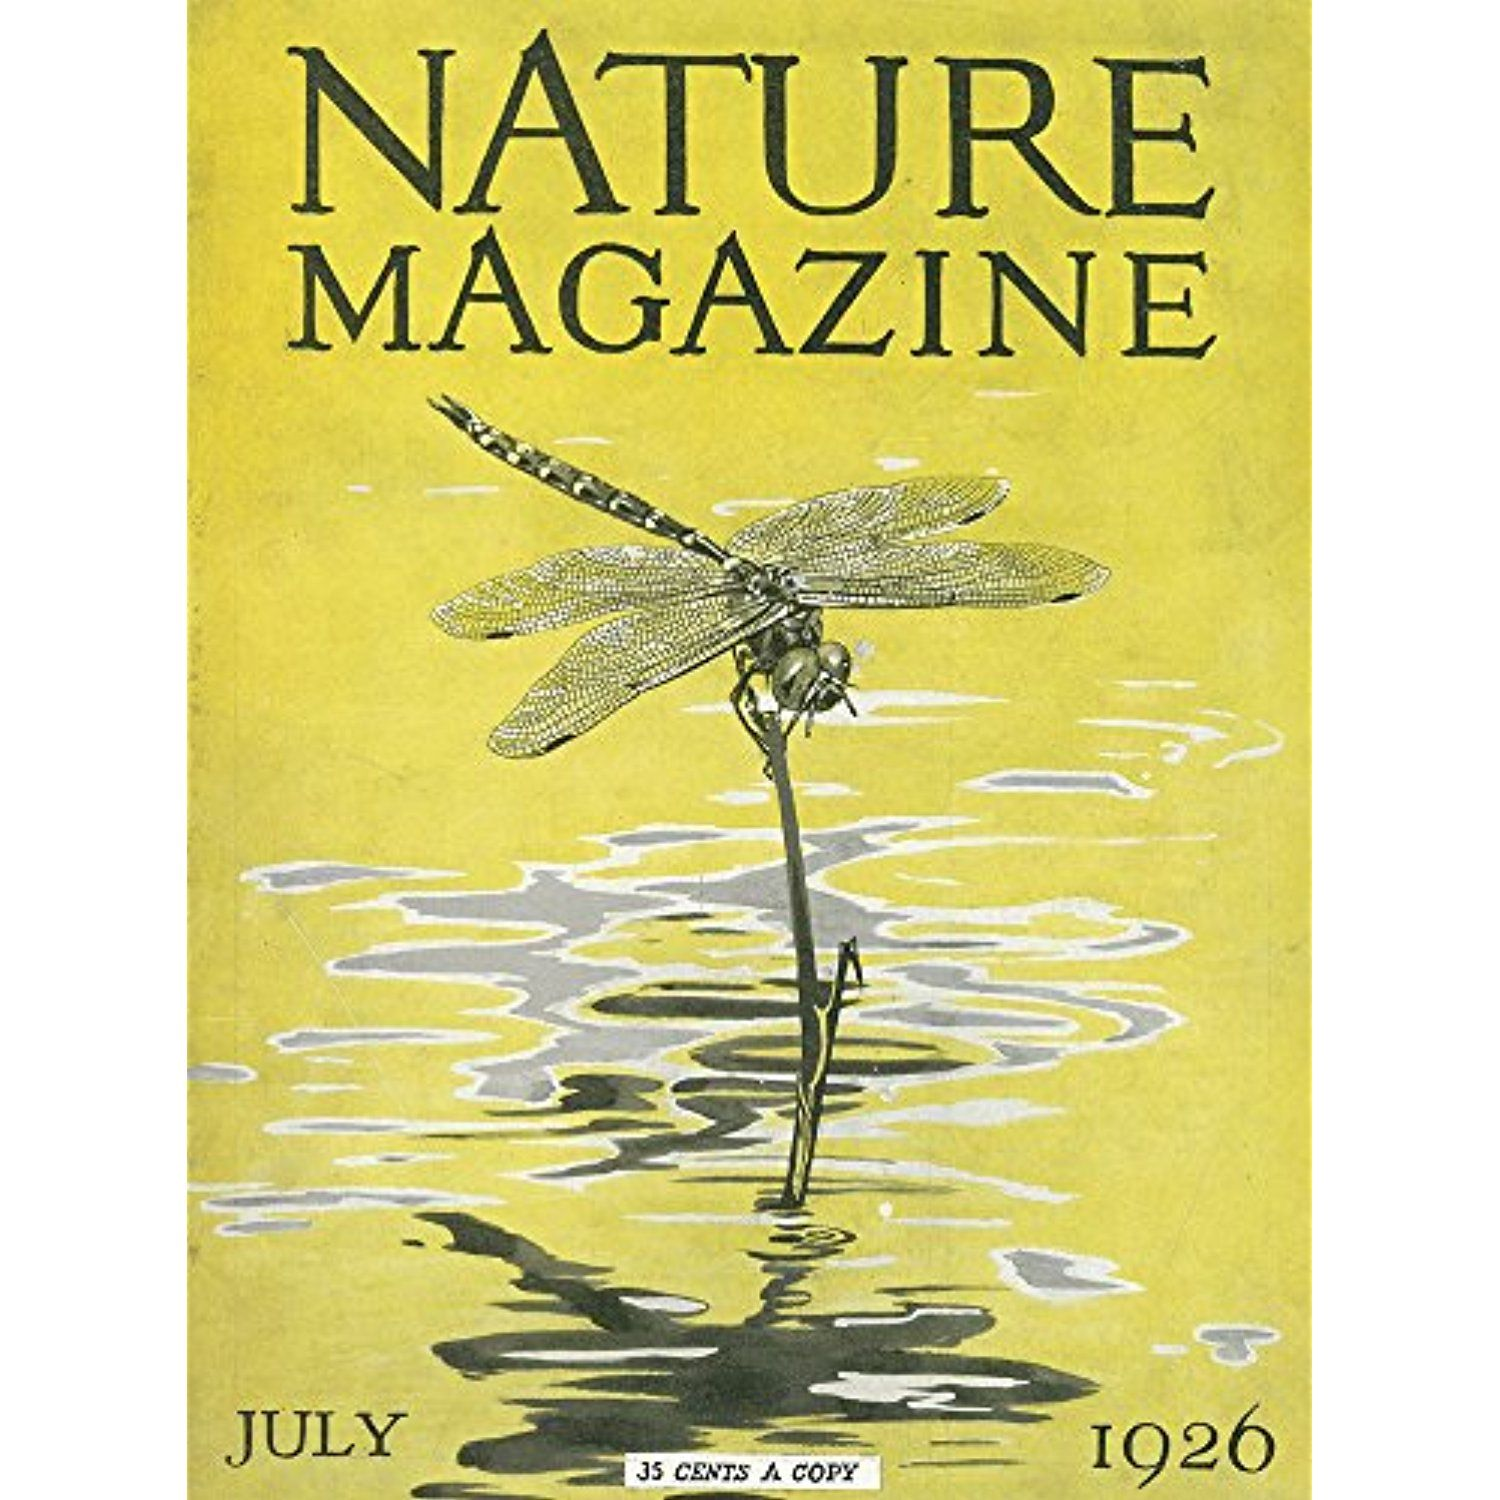 Nature Magazine - View of a Dragonfly over a Pond (12x18 SIGNED ...